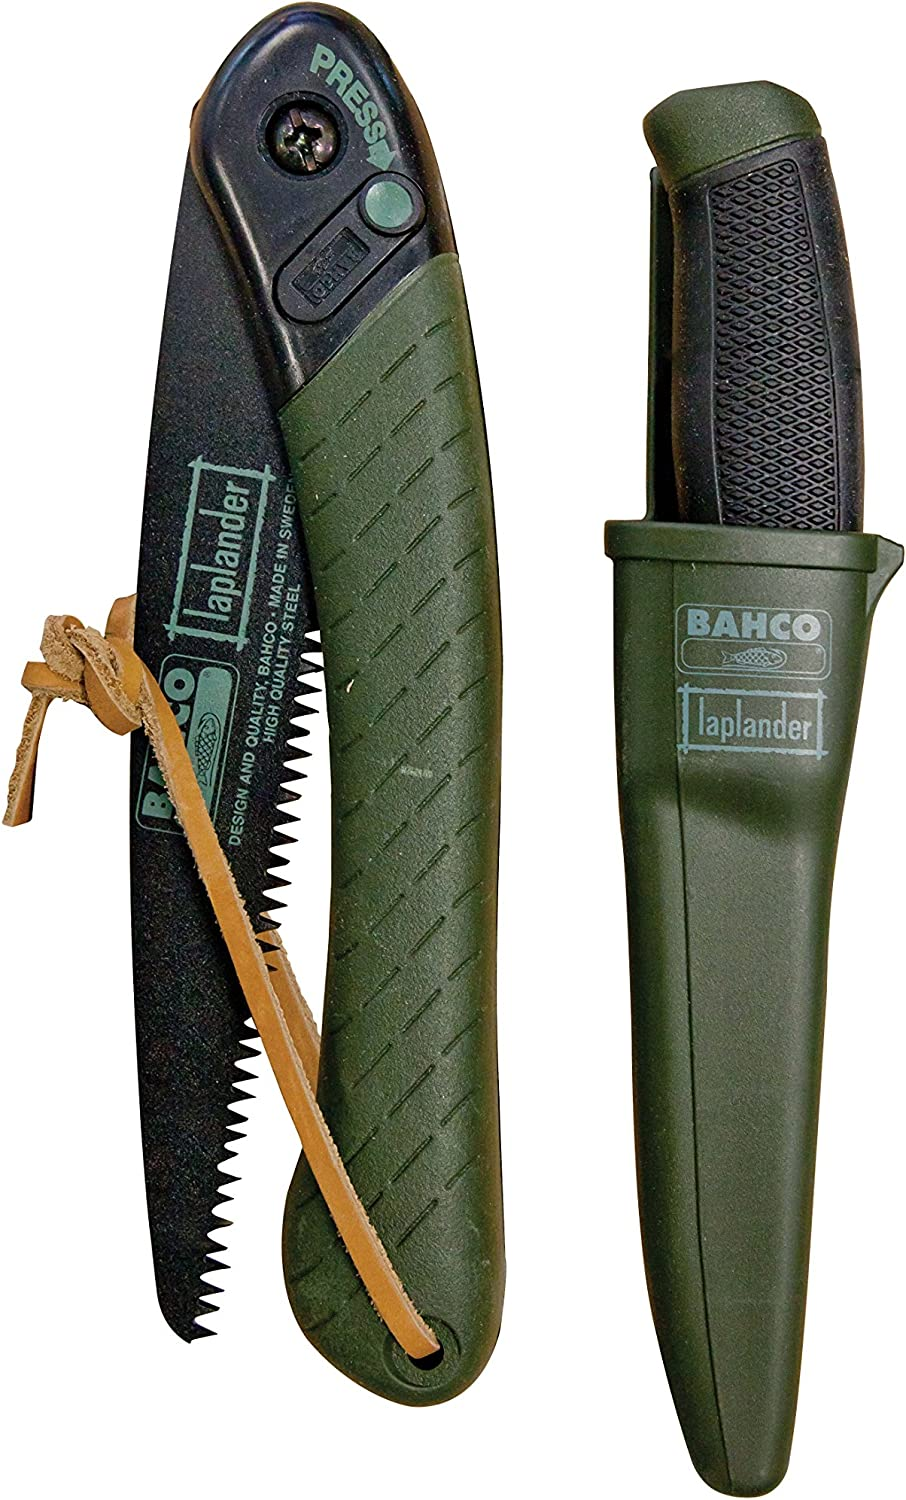 Bahco Laplander & Multipurpose Tradesman Knife Set